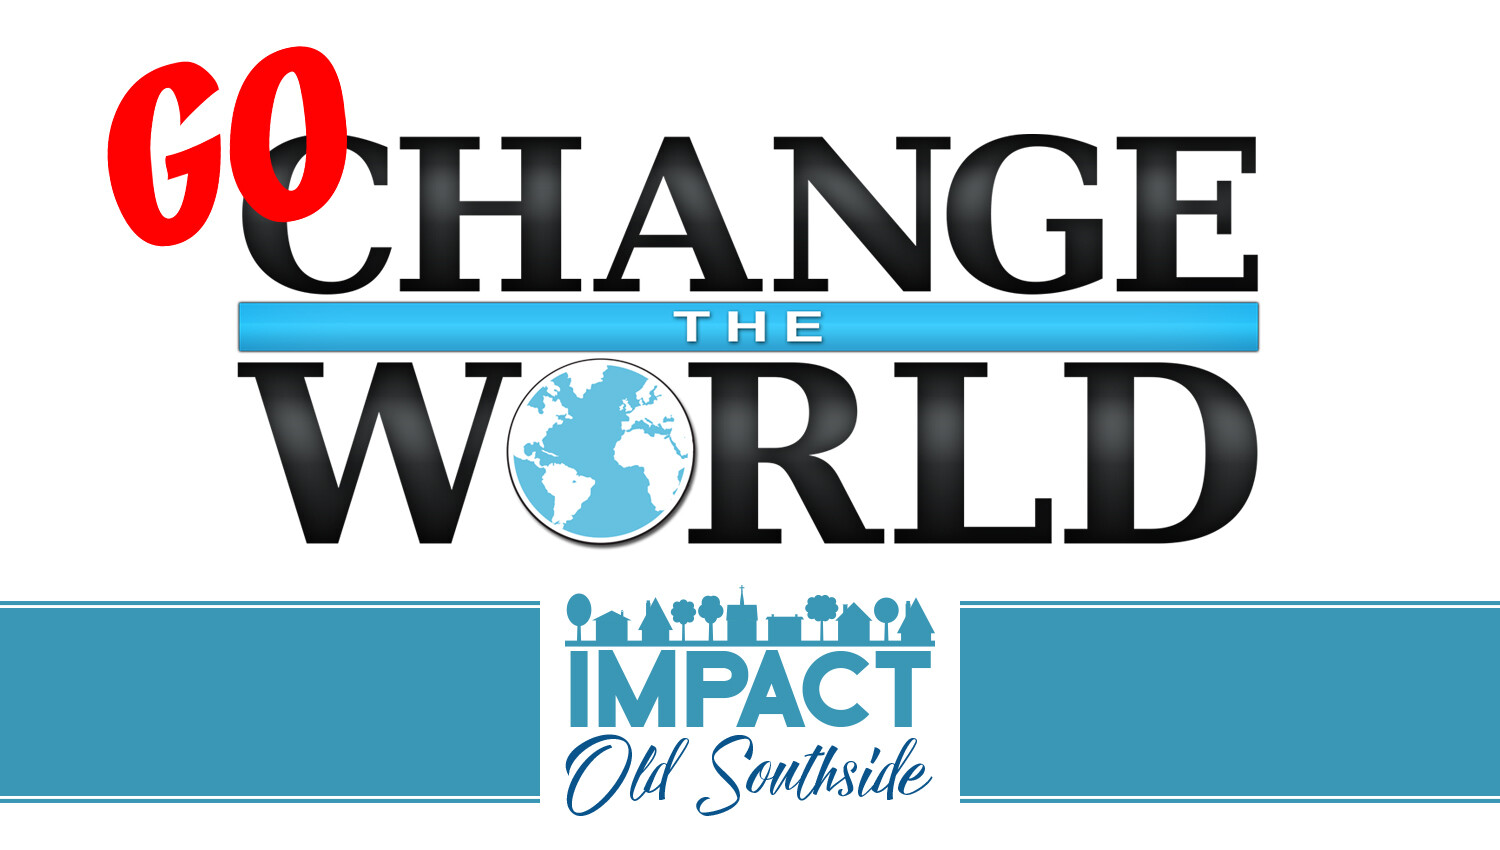 GO CHANGE THE WORLD: IMPACT OLD SOUTHSIDE